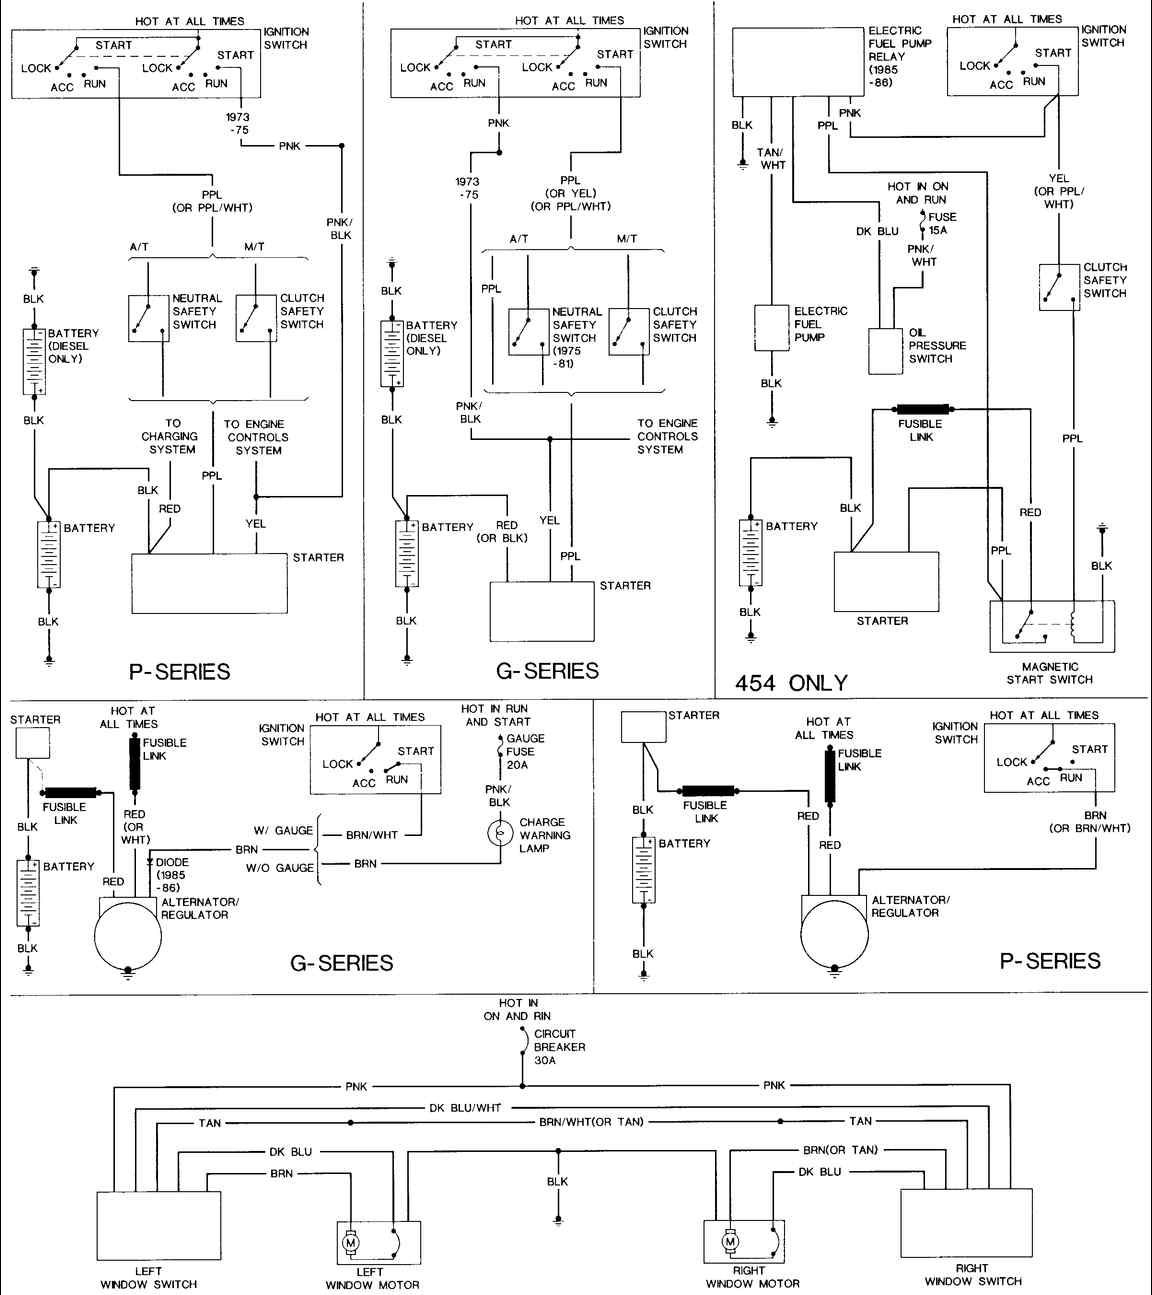 0c73623a181dc376dbb4777e2029d285 85 chevy truck wiring diagram 85 chevy van the steering column chevy steering column wiring diagram at bakdesigns.co